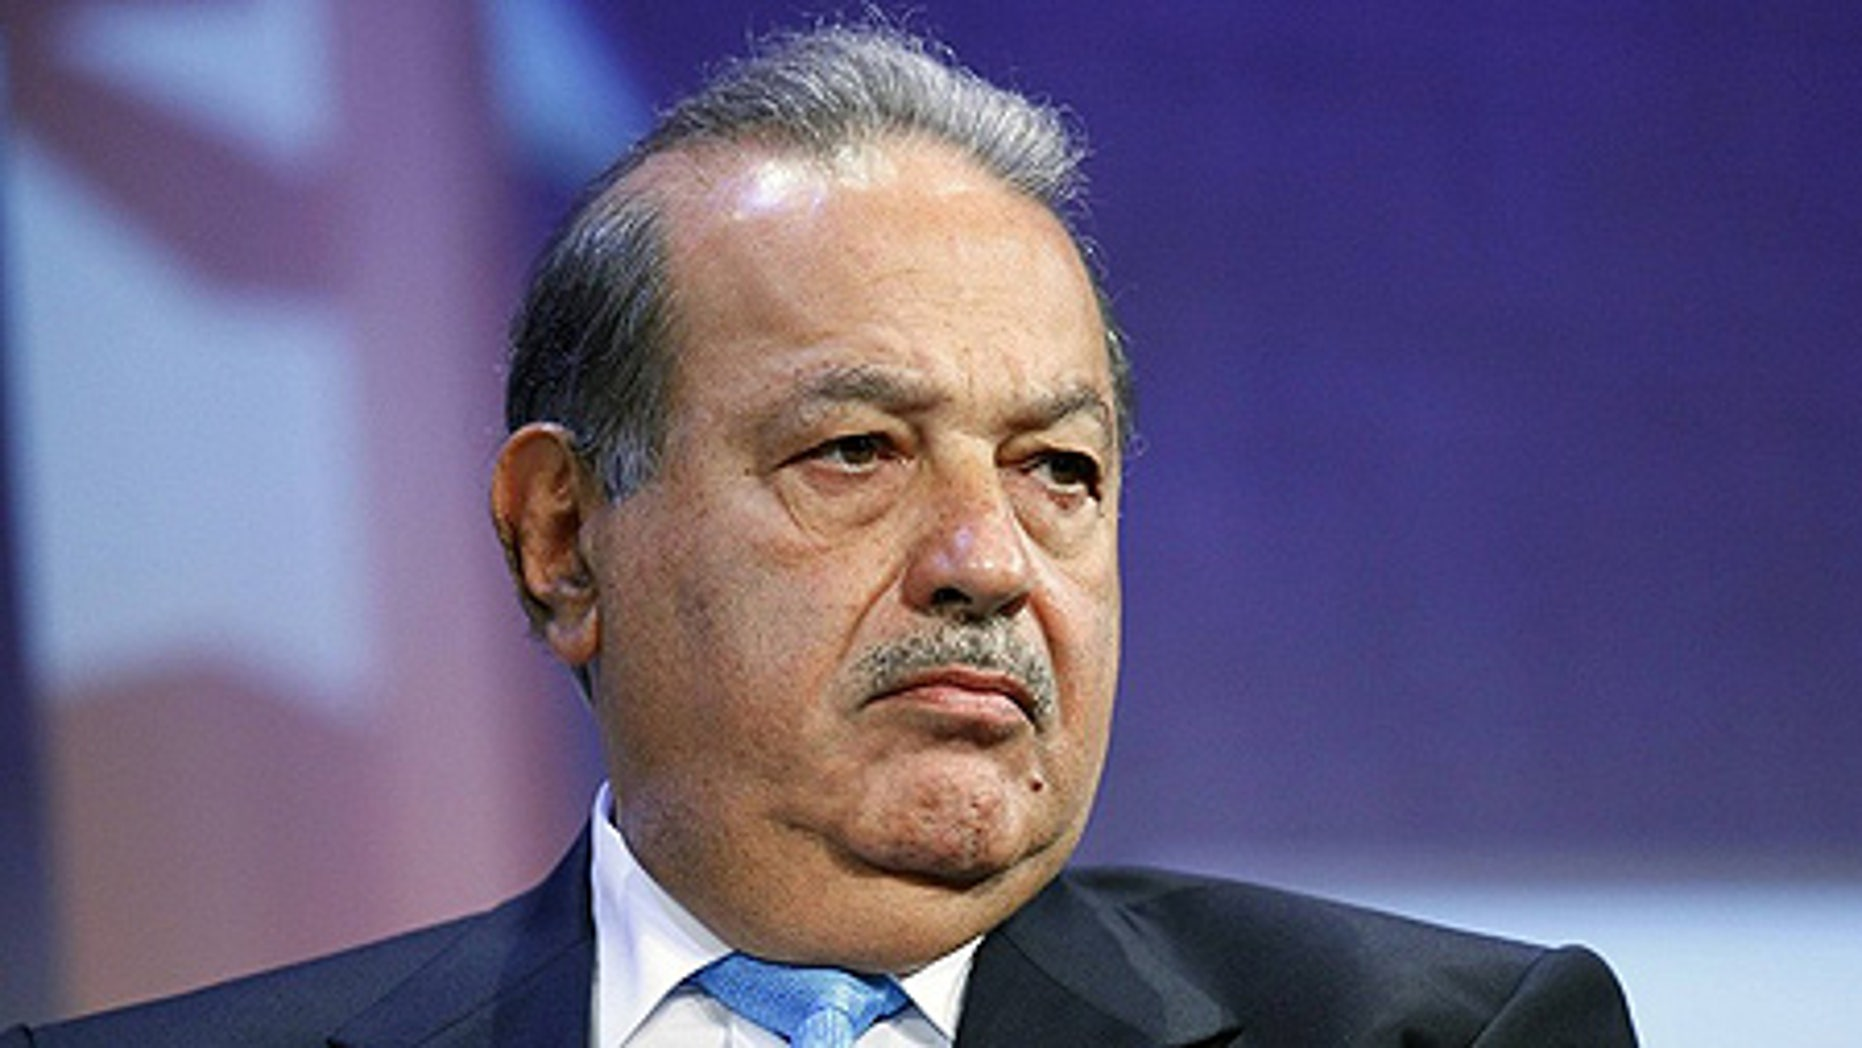 Sep. 24: Carlos Slim participates in a panel discussion at the Clinton Global Initiative in New York.